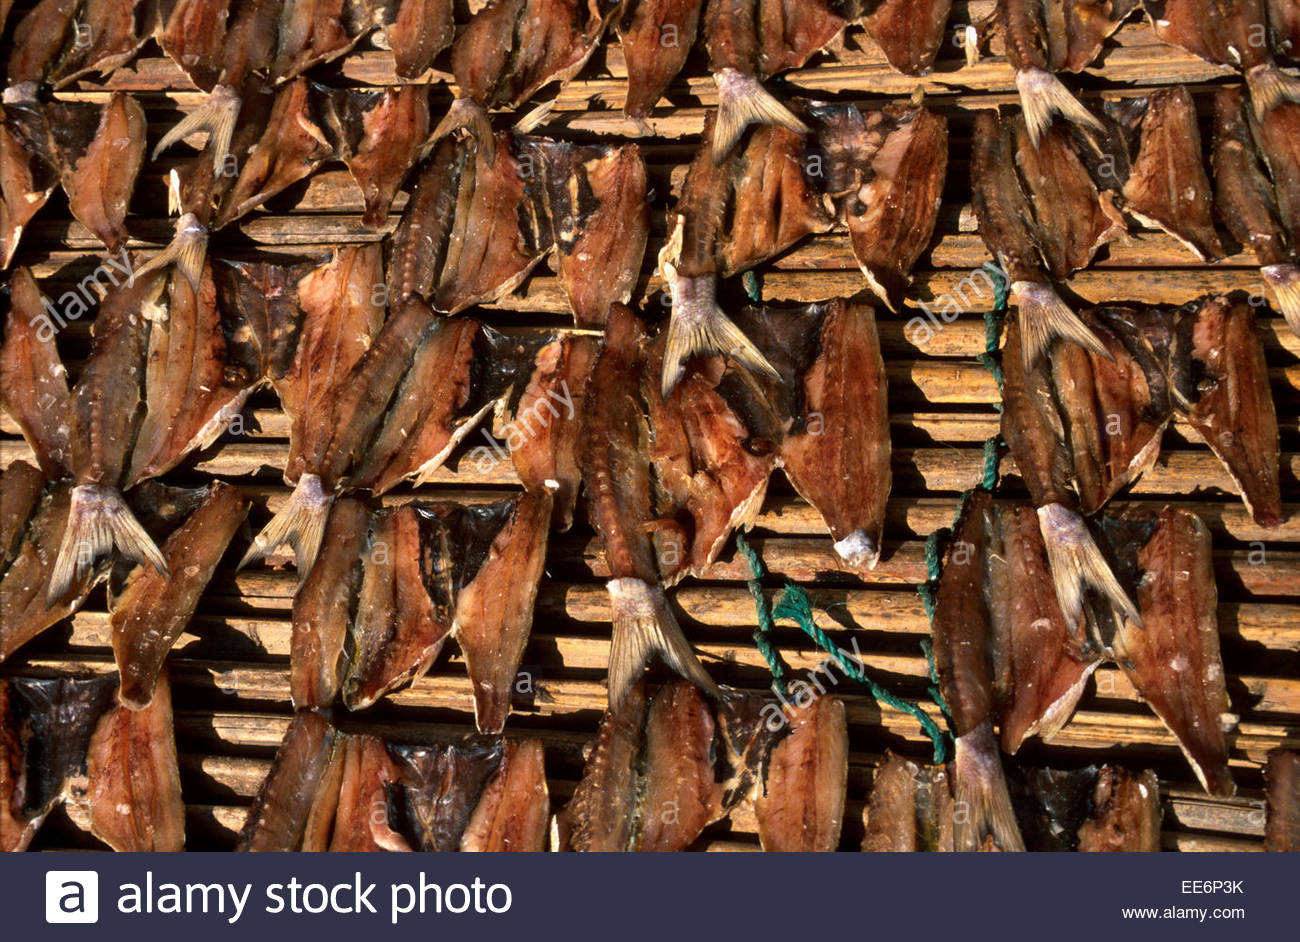 Mexcaltitan, fish drying in the sun - Stock Image